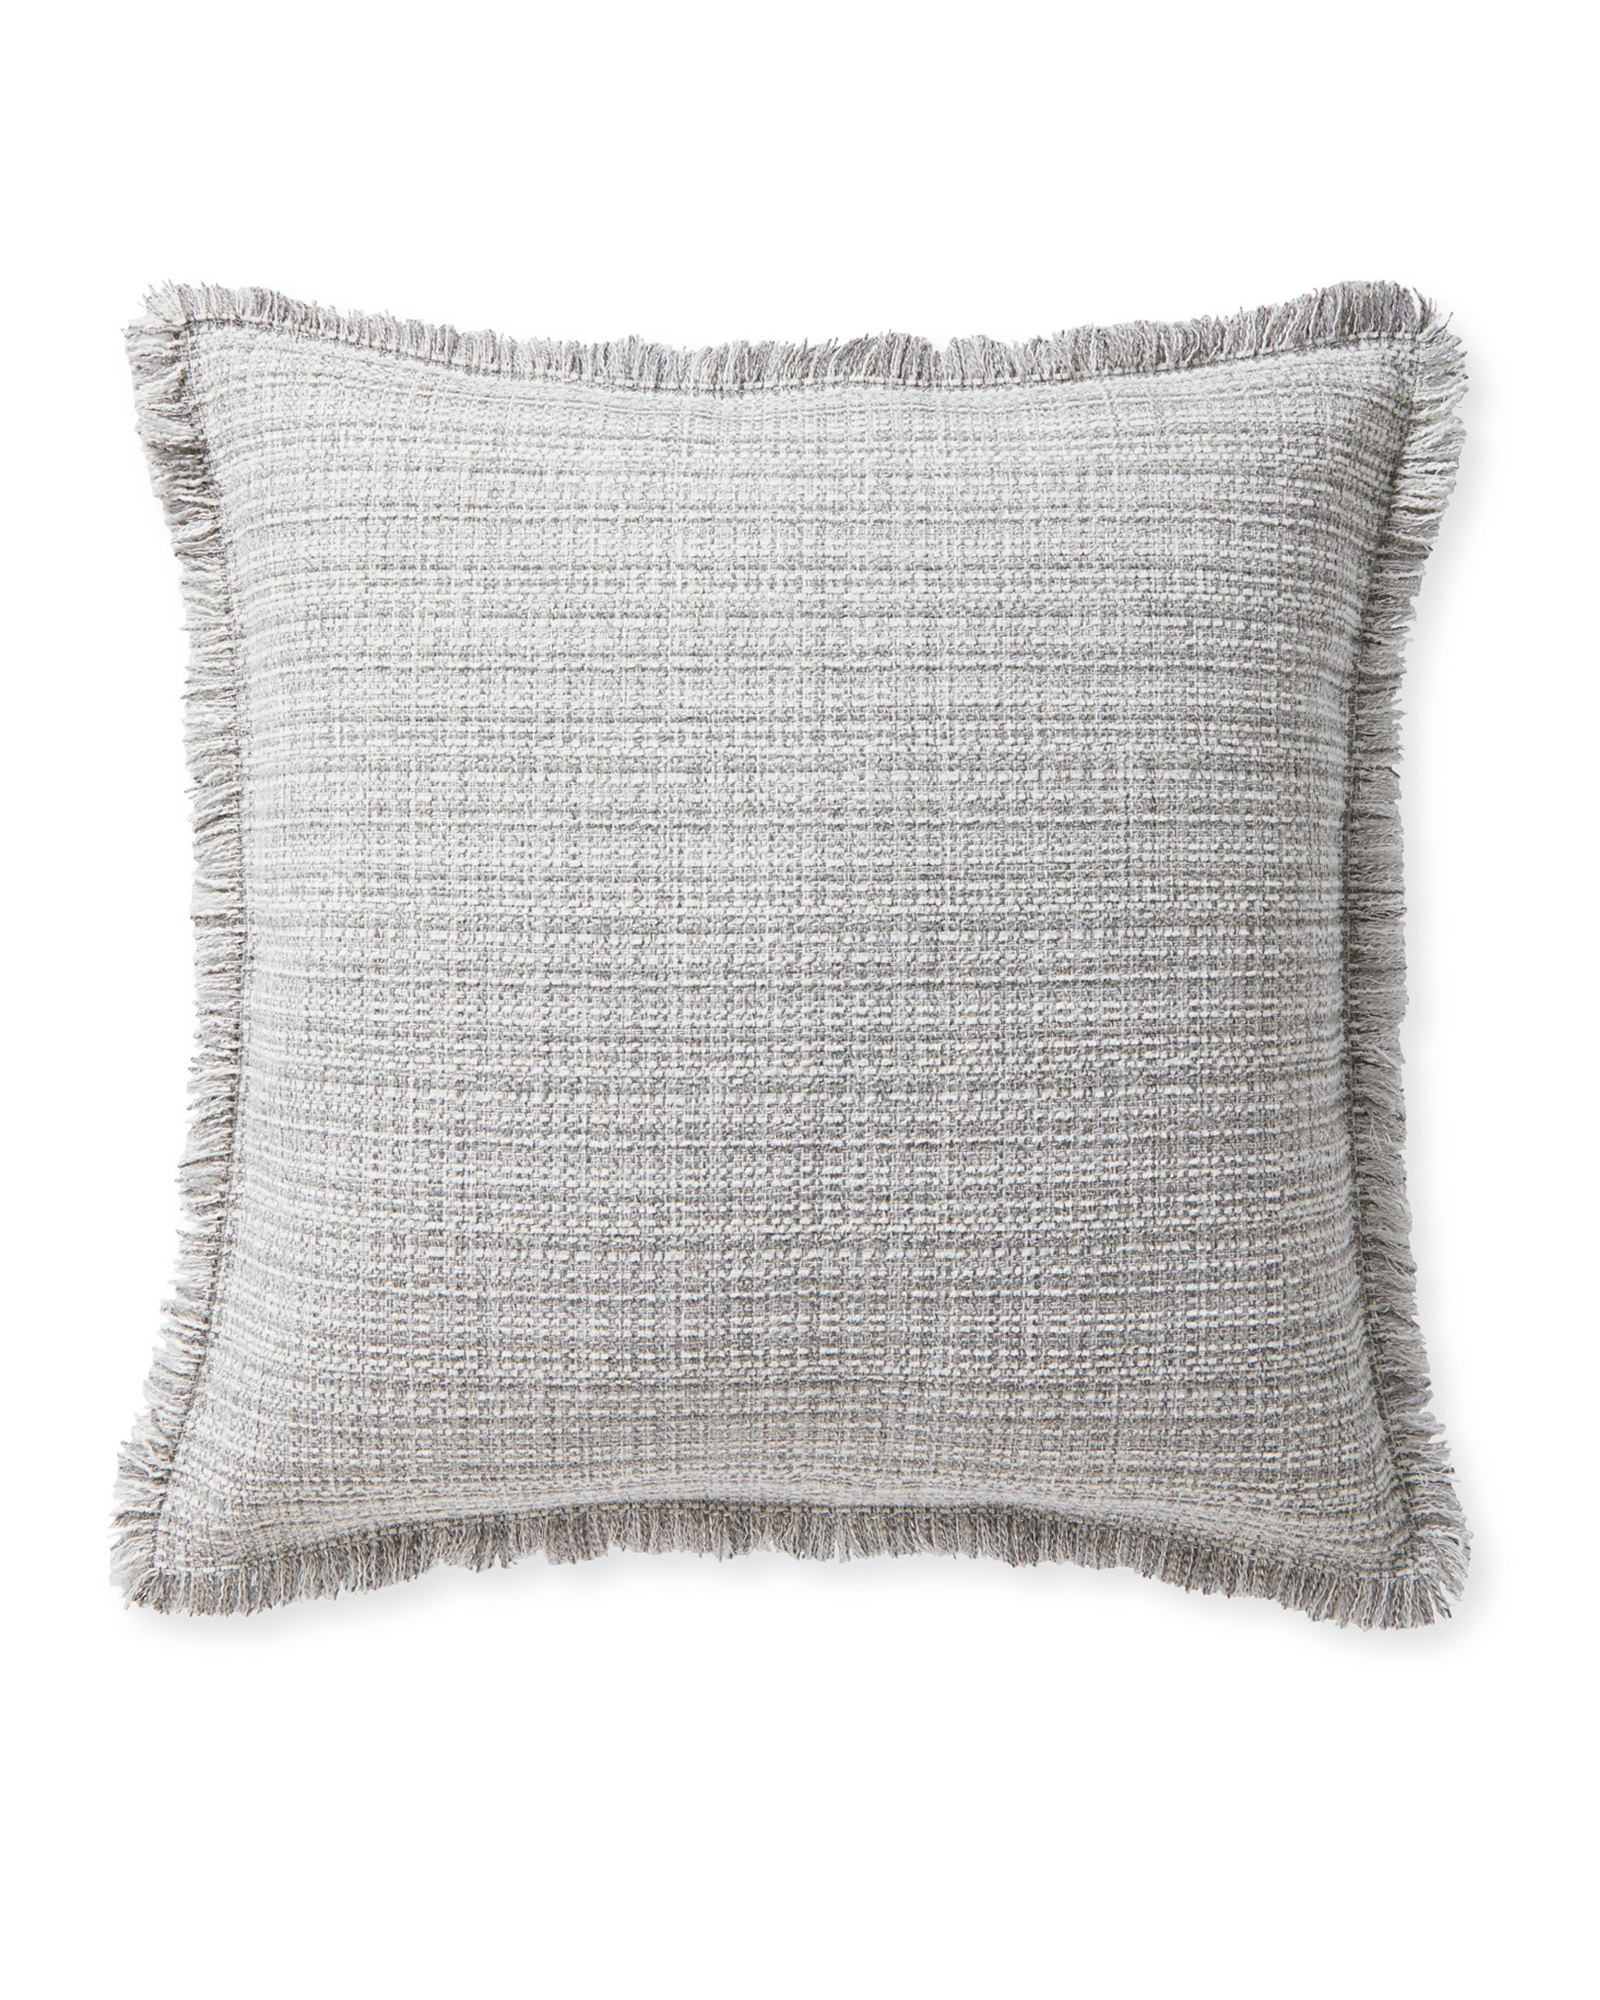 Perennials® Rosemount Pillow Cover, Fog